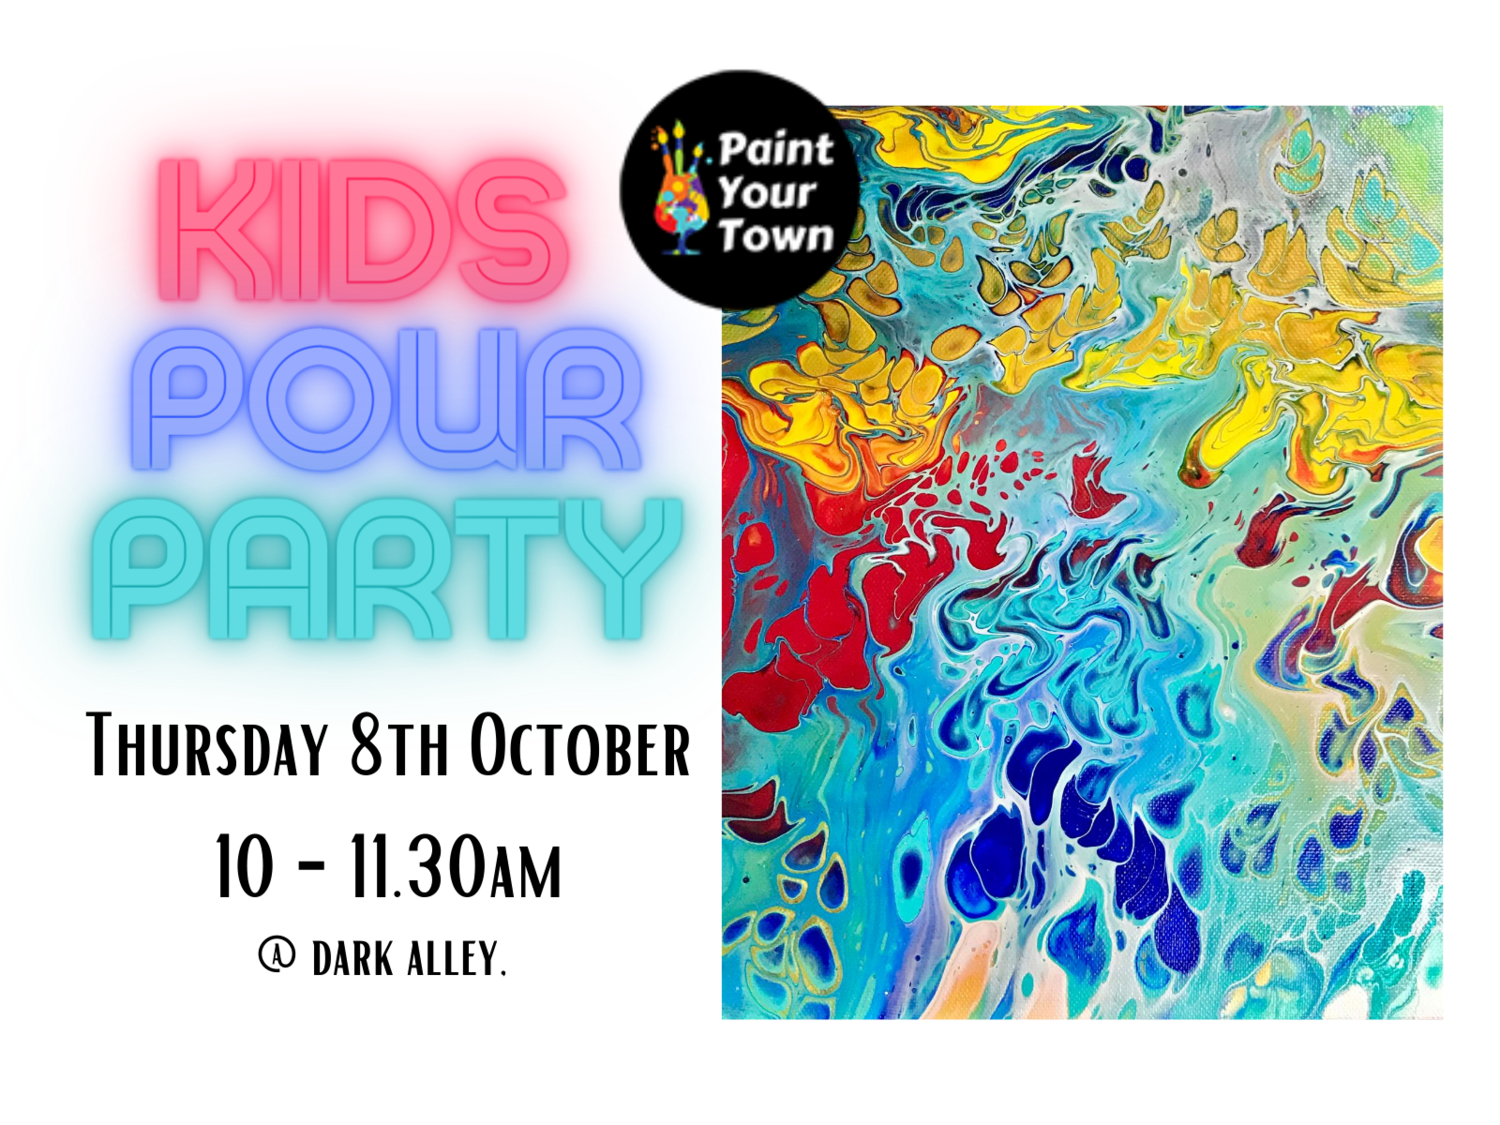 Family Acrylic Pour Workshop at Star Alley Wauchope! Thursday 8 October 10am